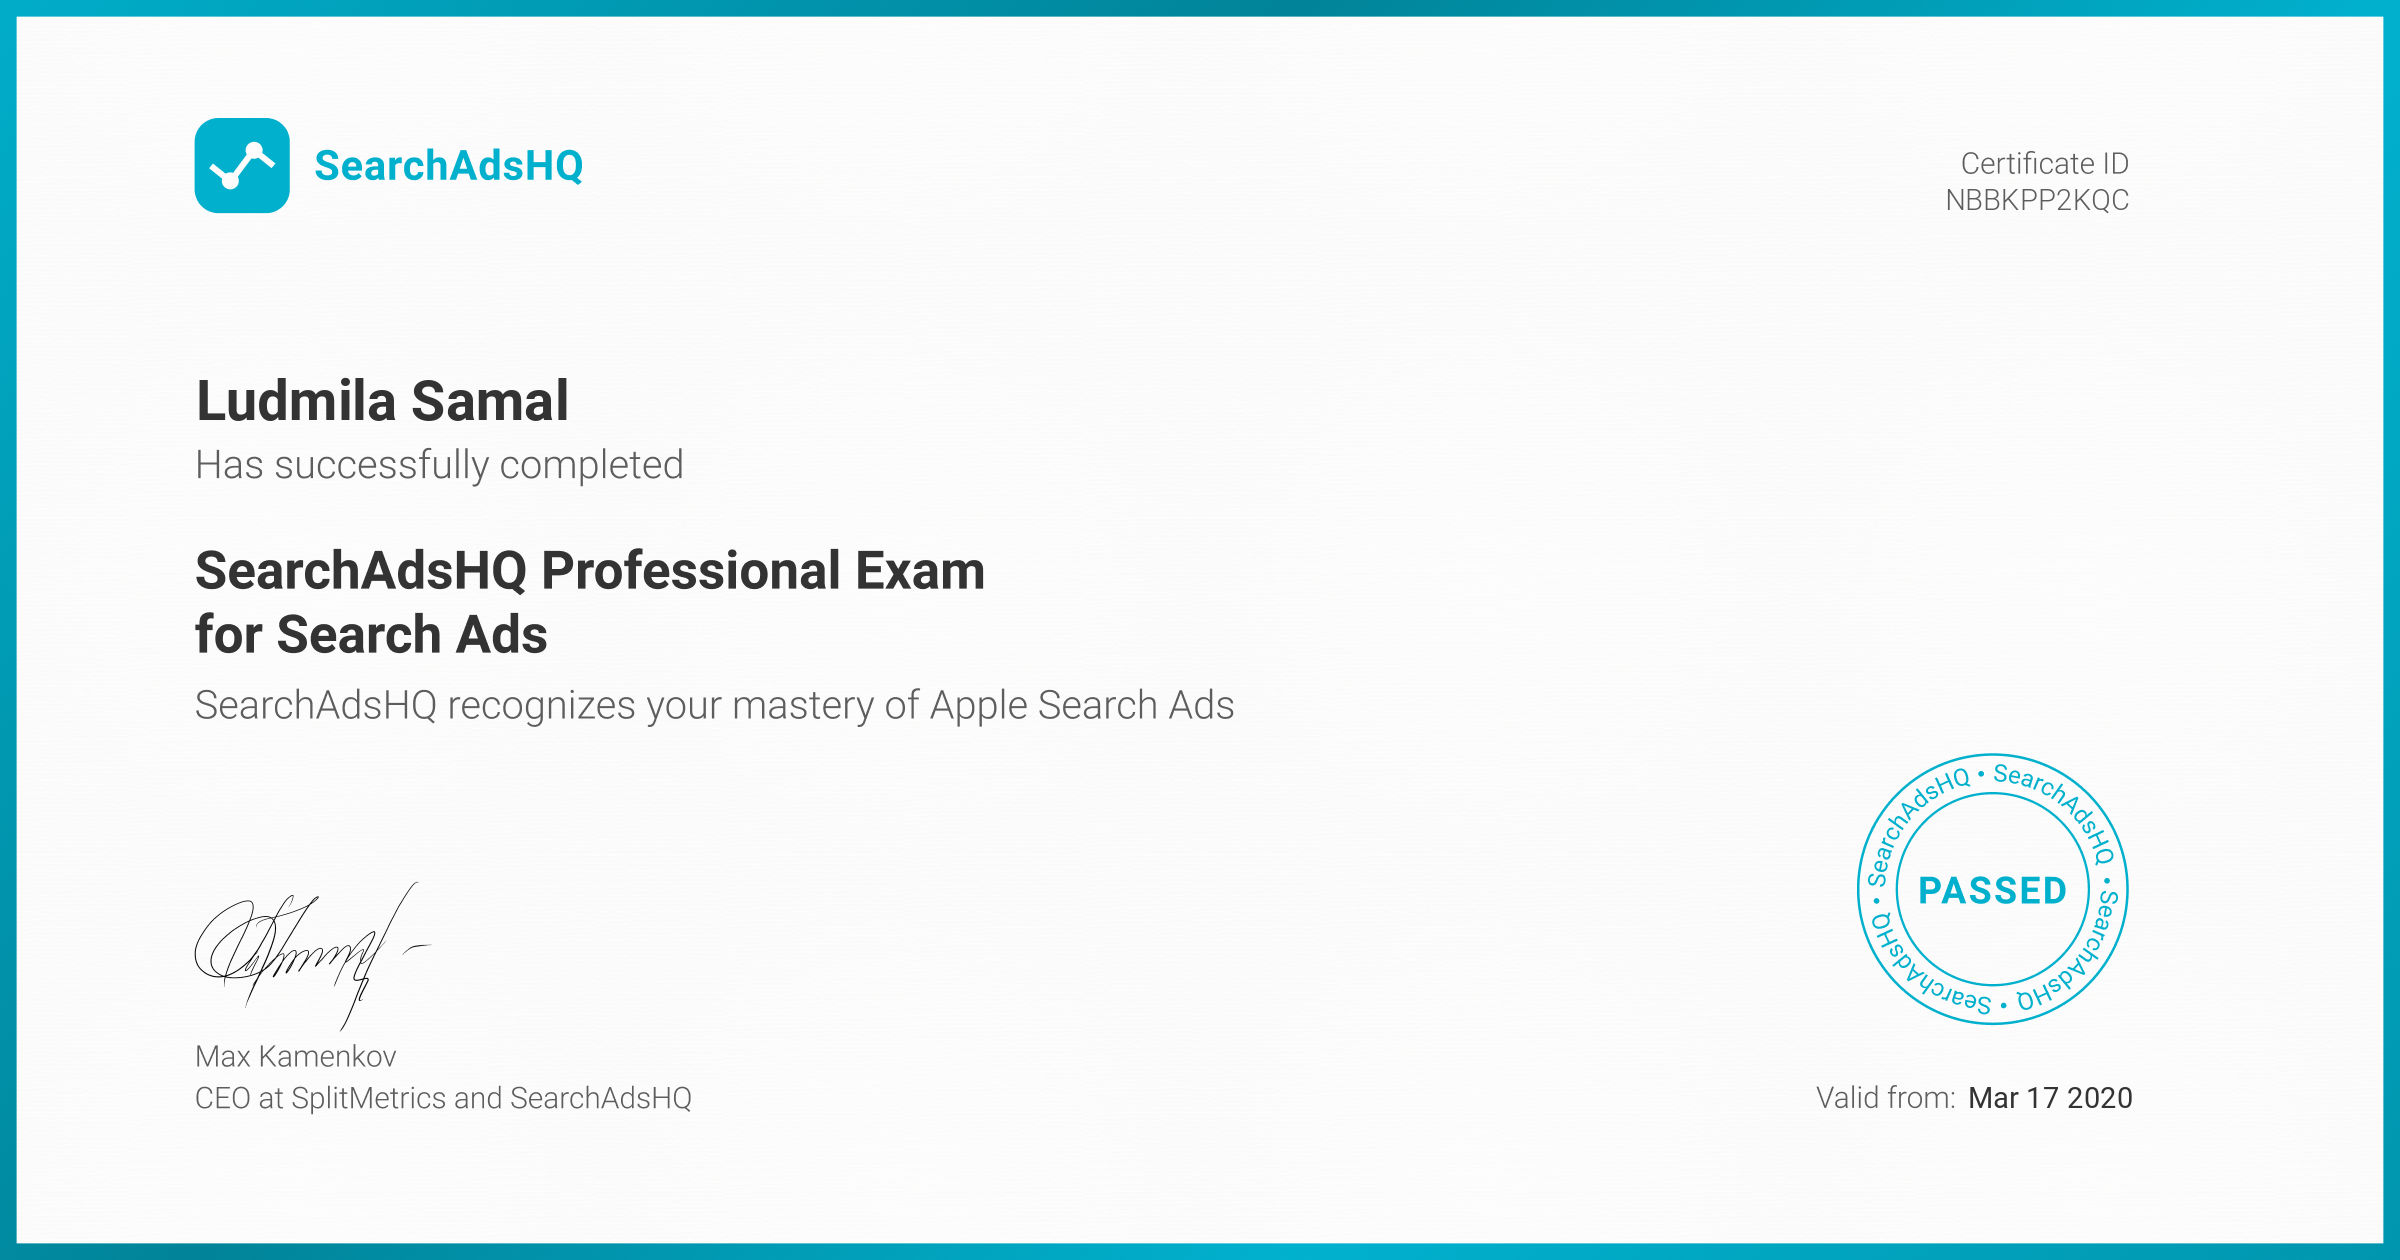 Certificate for Ludmila Samal | SearchAdsHQ Professional Exam for Search Ads